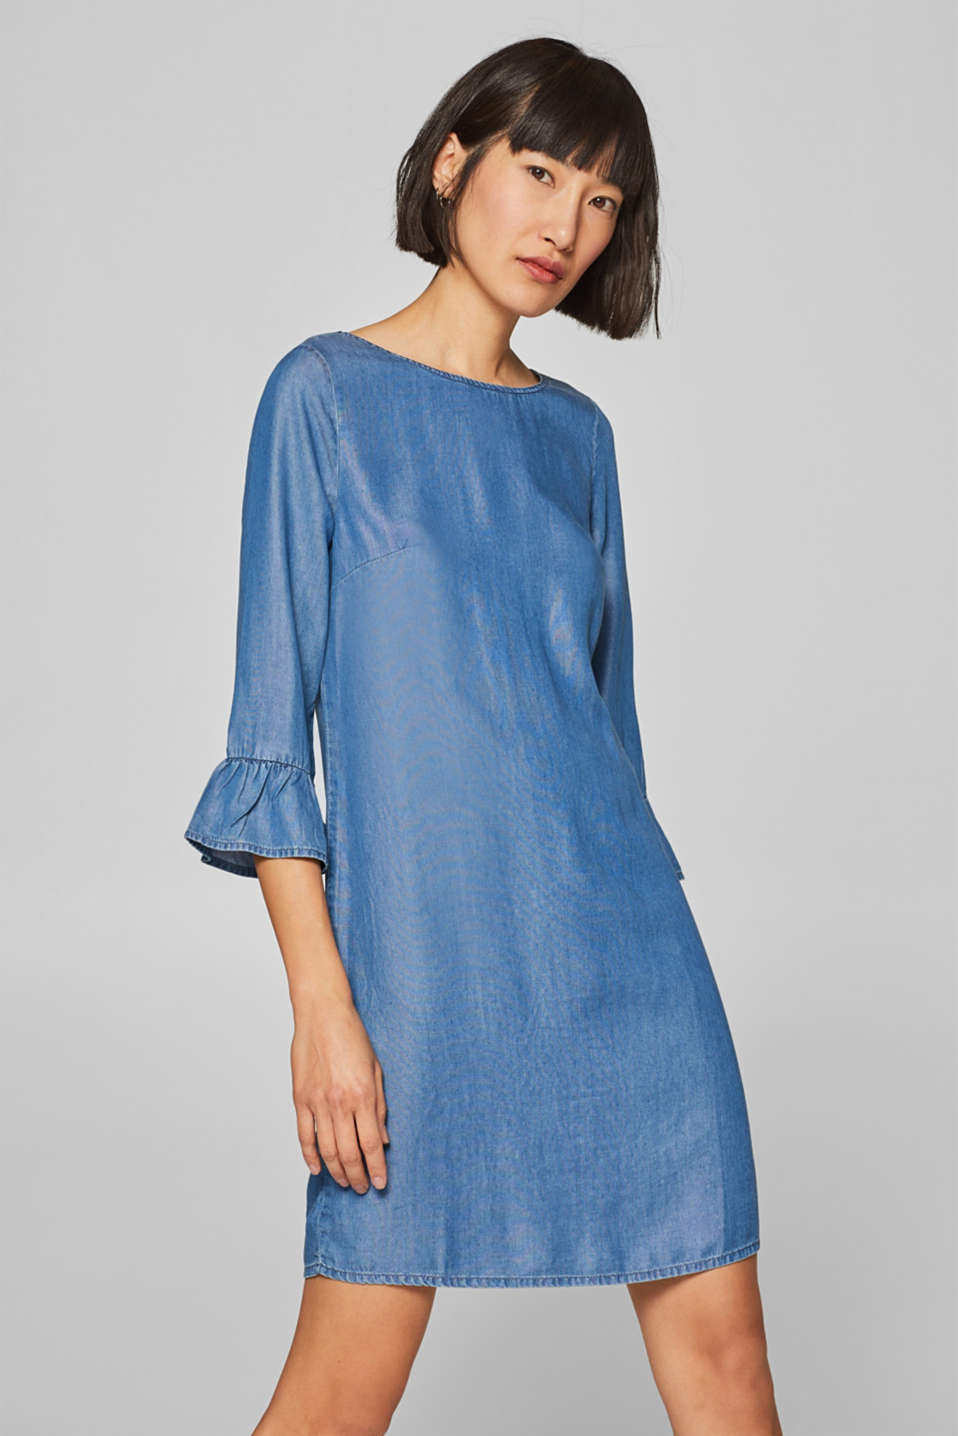 Esprit - Dress with flounce sleeves, 100% lyocell